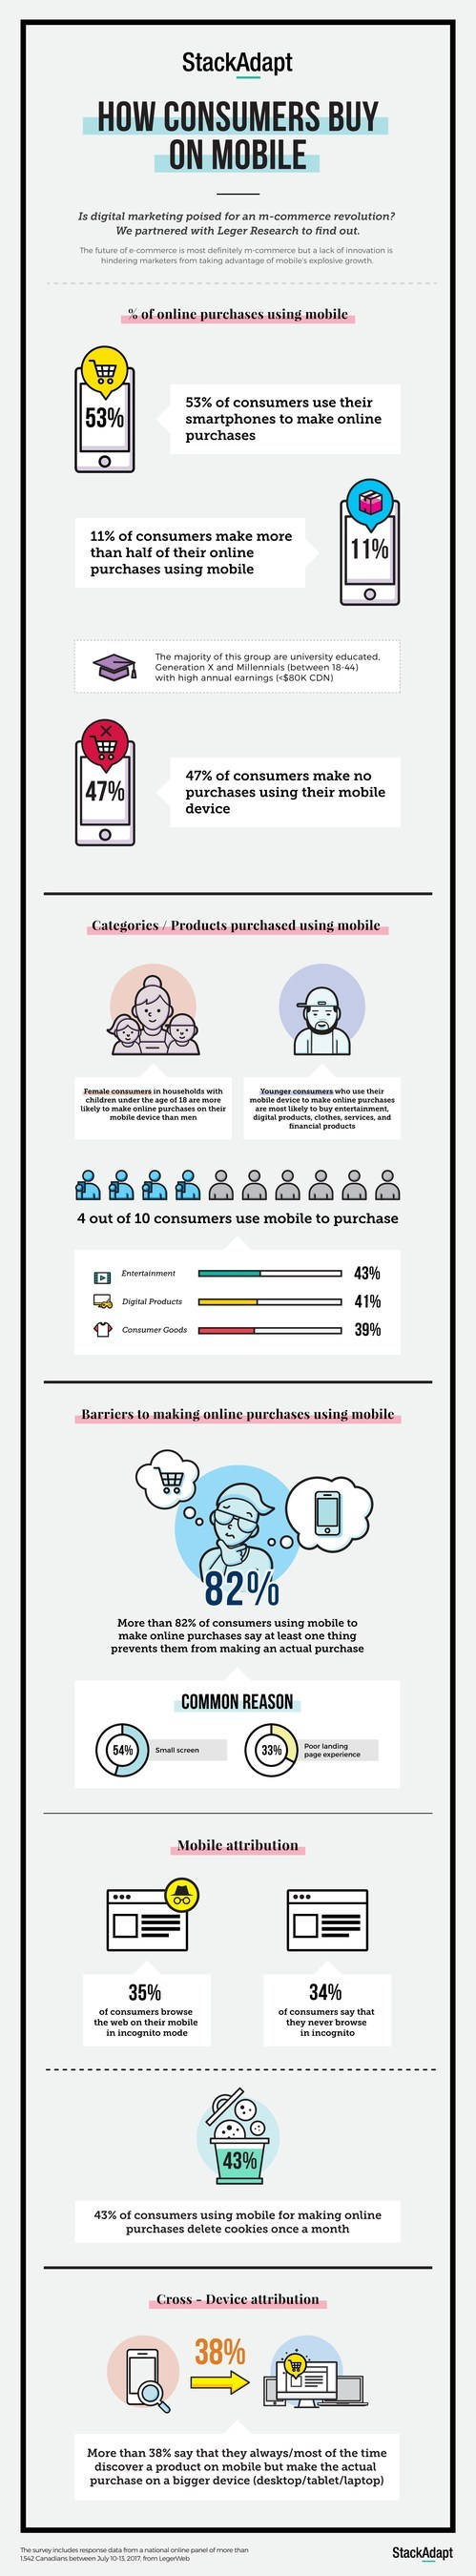 How Consumers Buy on Mobile (CNW Group/StackAdapt)